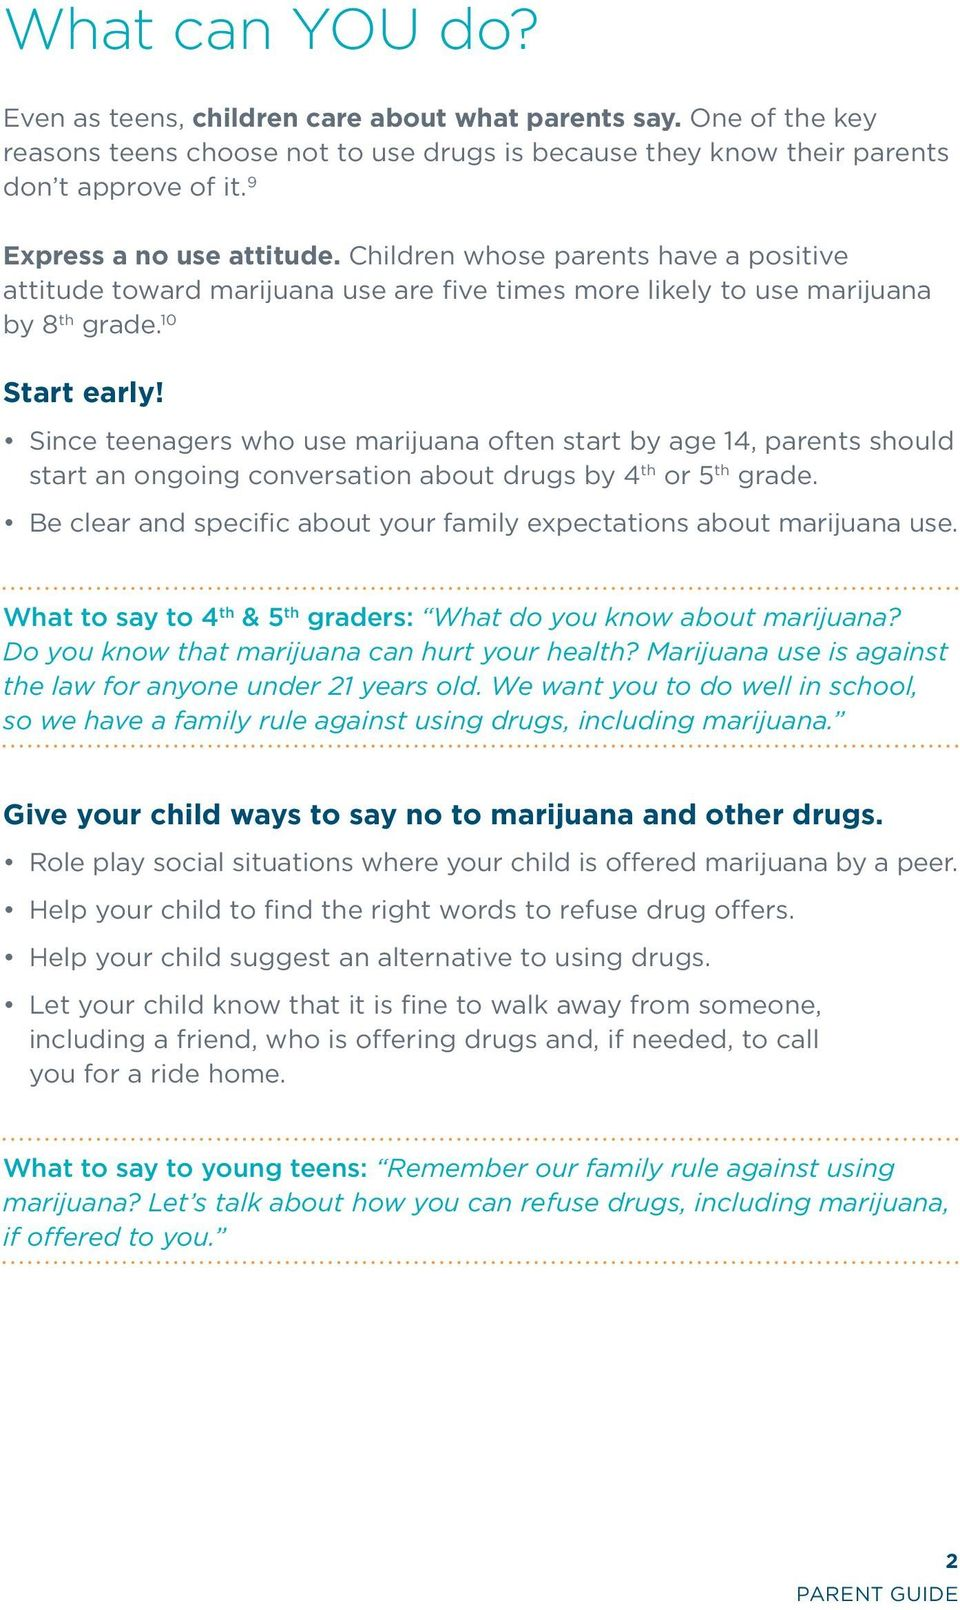 Since teenagers who use marijuana often start by age 14, parents should start an ongoing conversation about drugs by 4 th or 5 th grade.